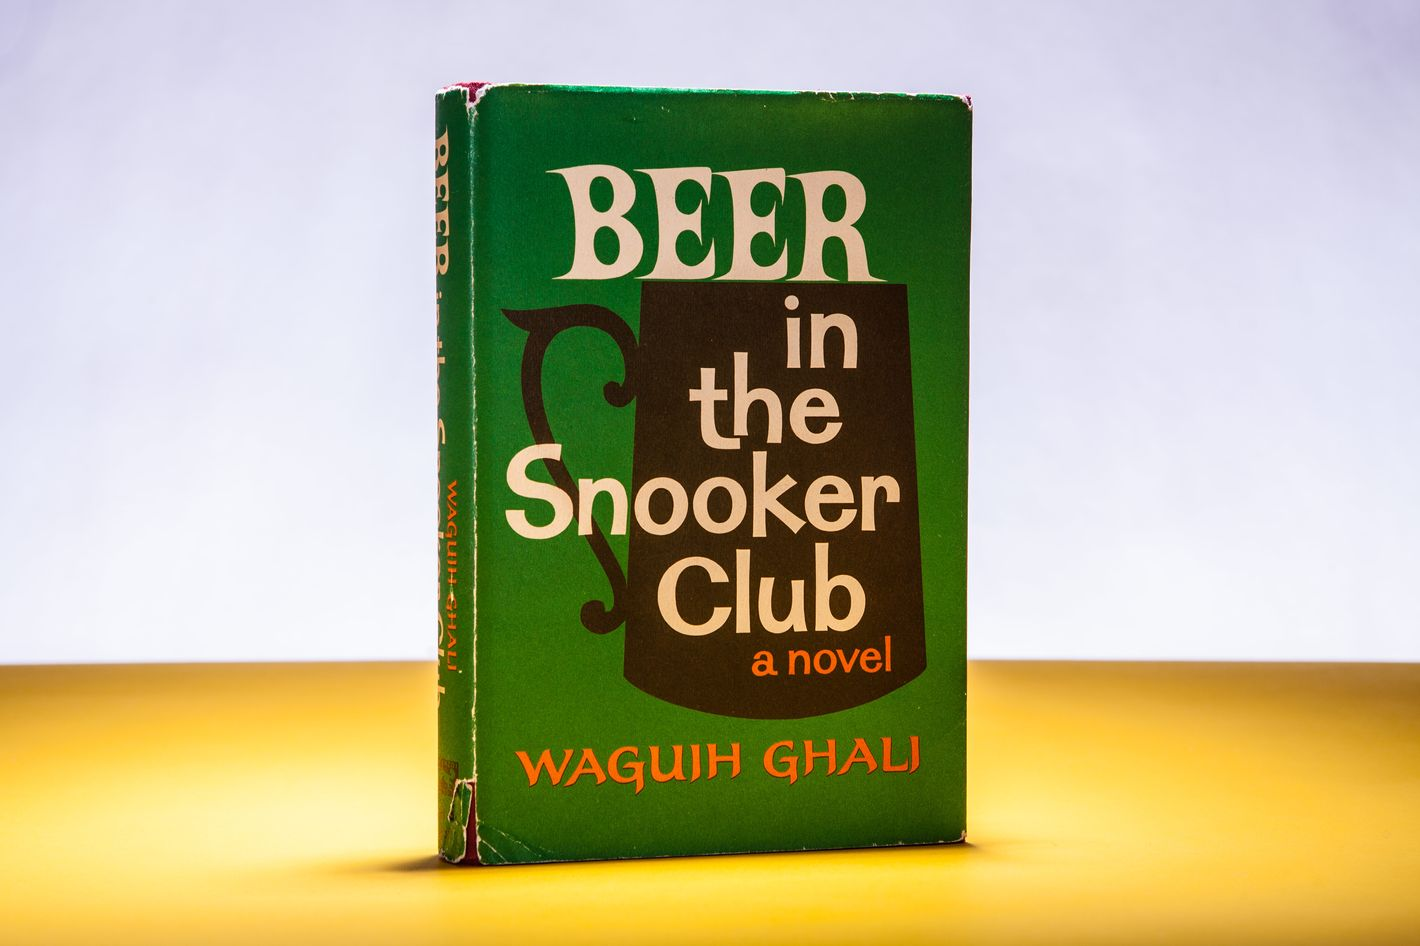 'Beer in the Snooker Club,' Waguih Ghali